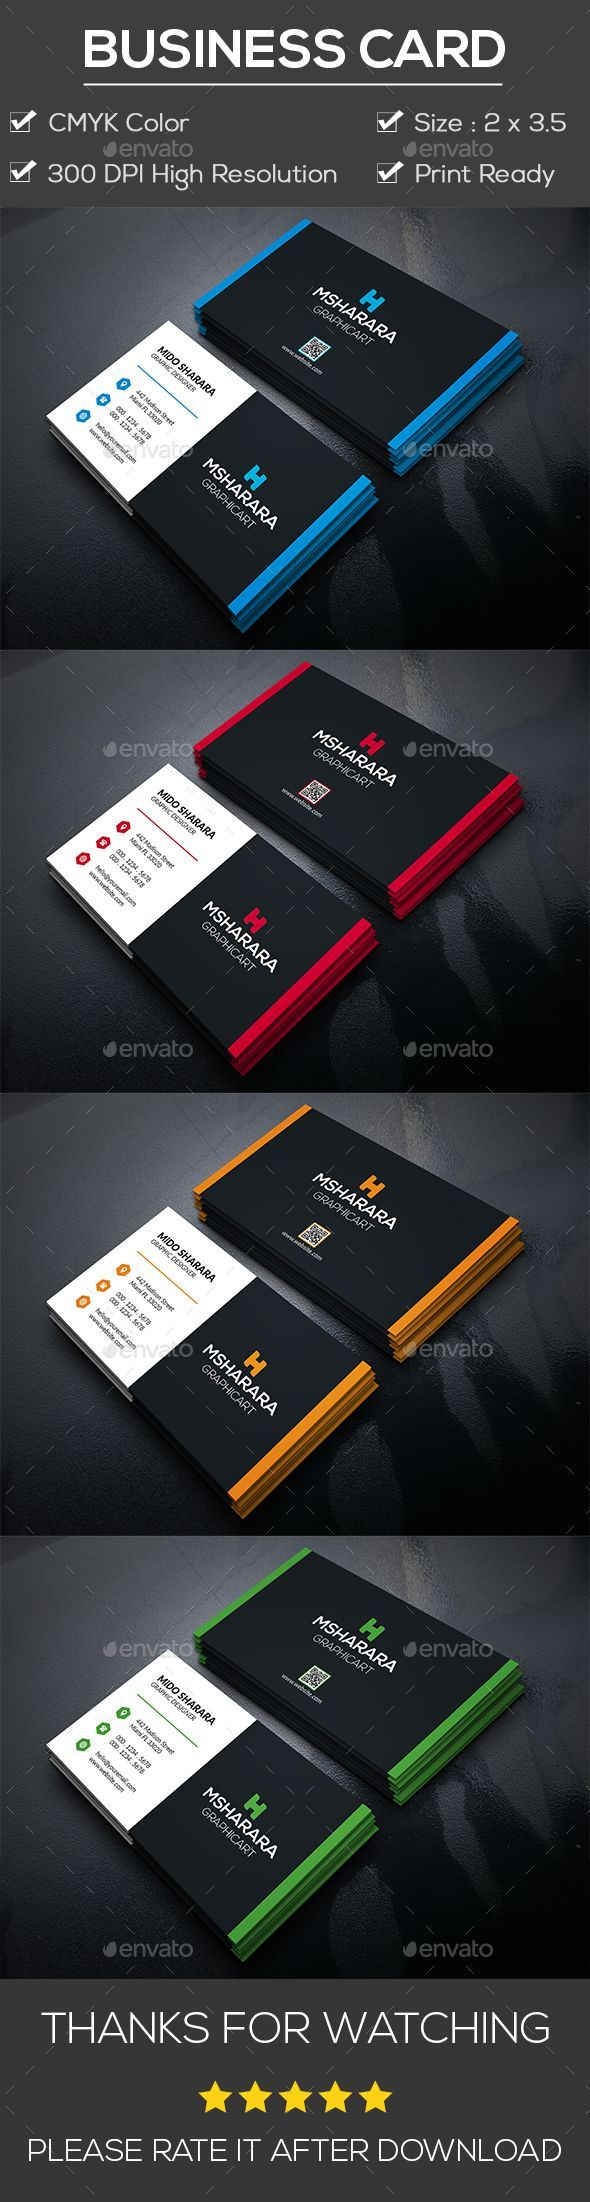 747 best card design images on pinterest name cards business business card alramifo Images